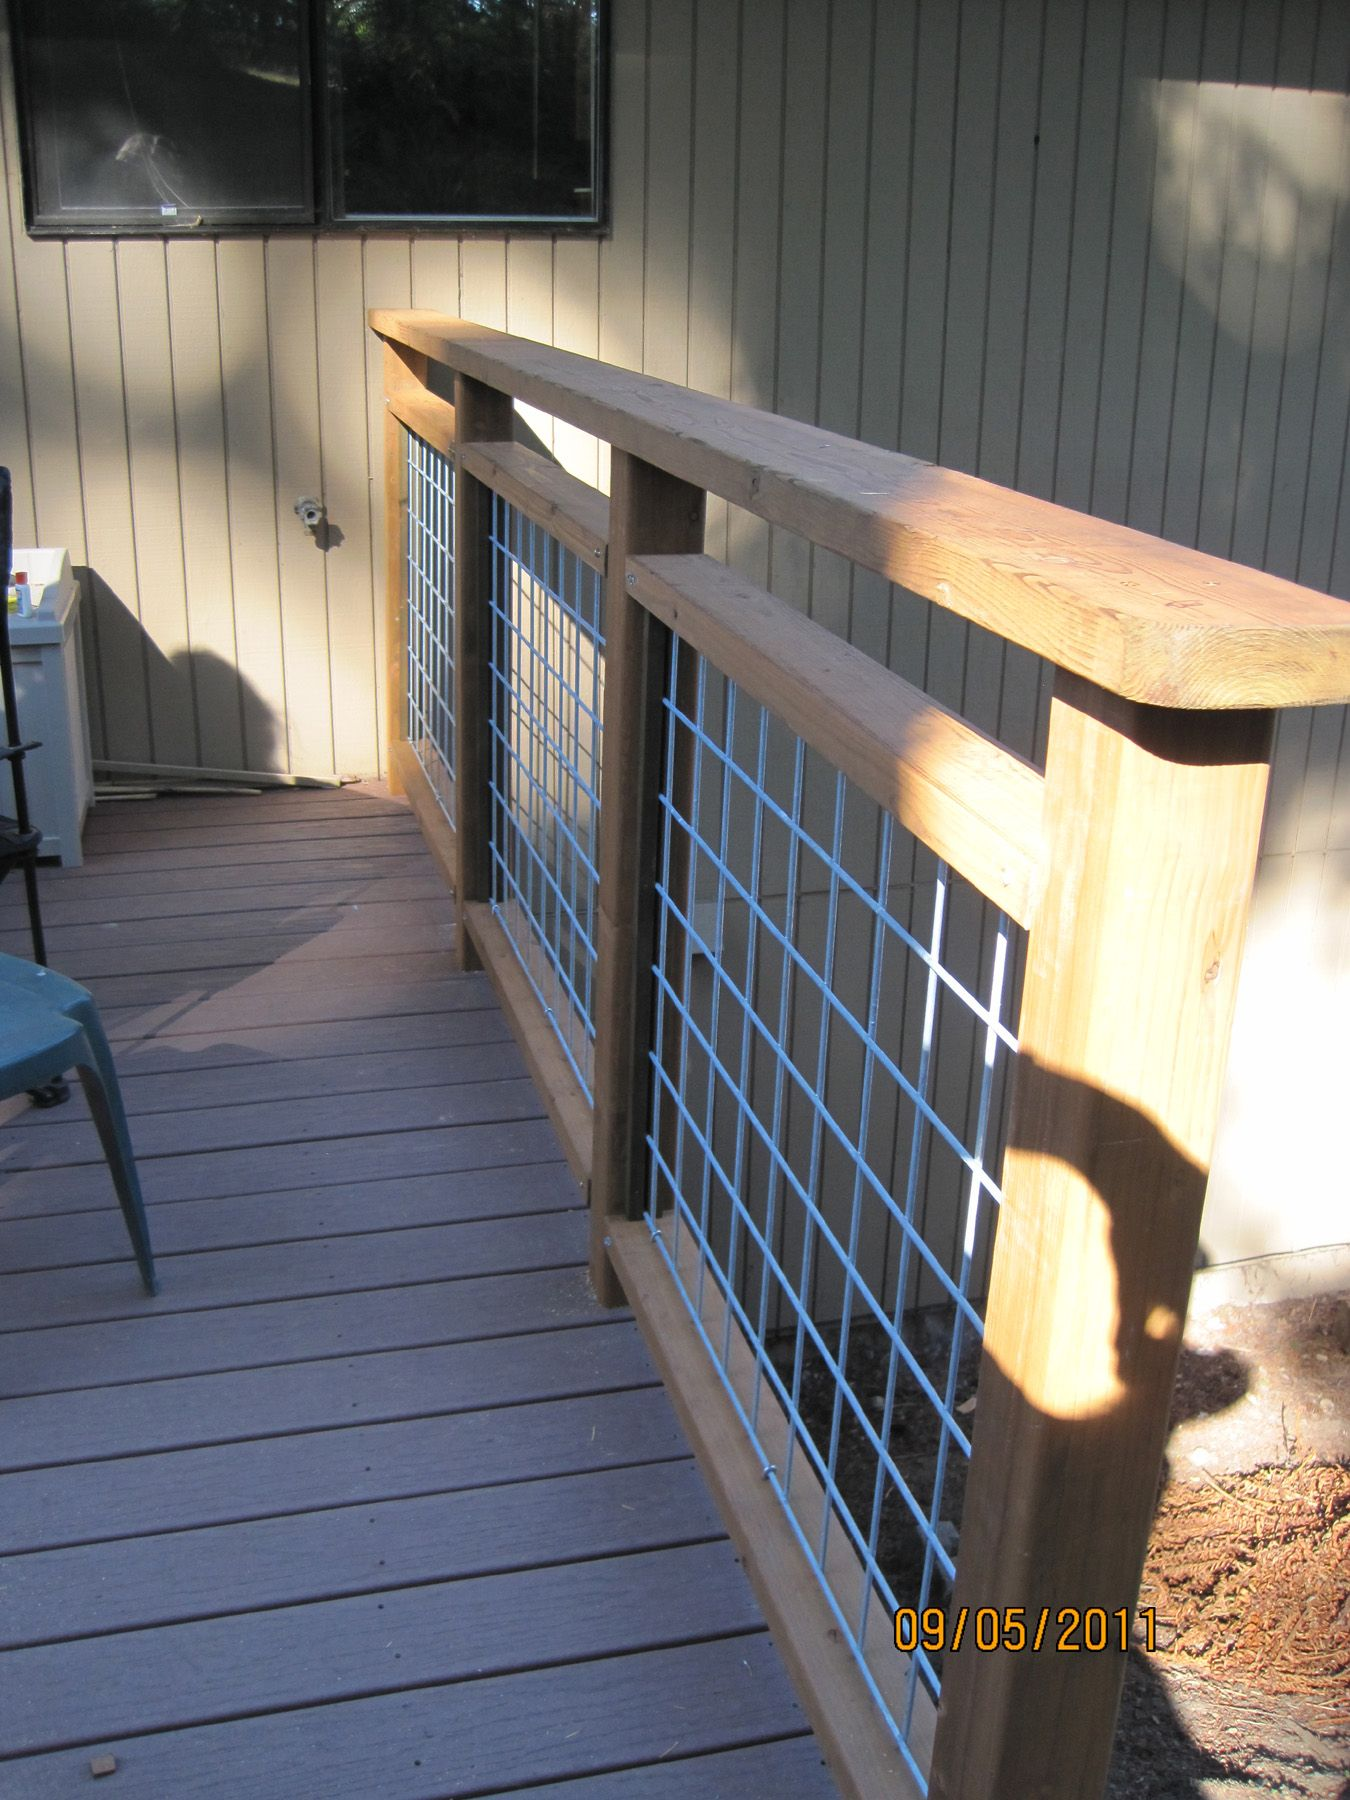 wire porch railing ideas on do it yourself deck railing is done building a deck deck railings wire deck railing pinterest